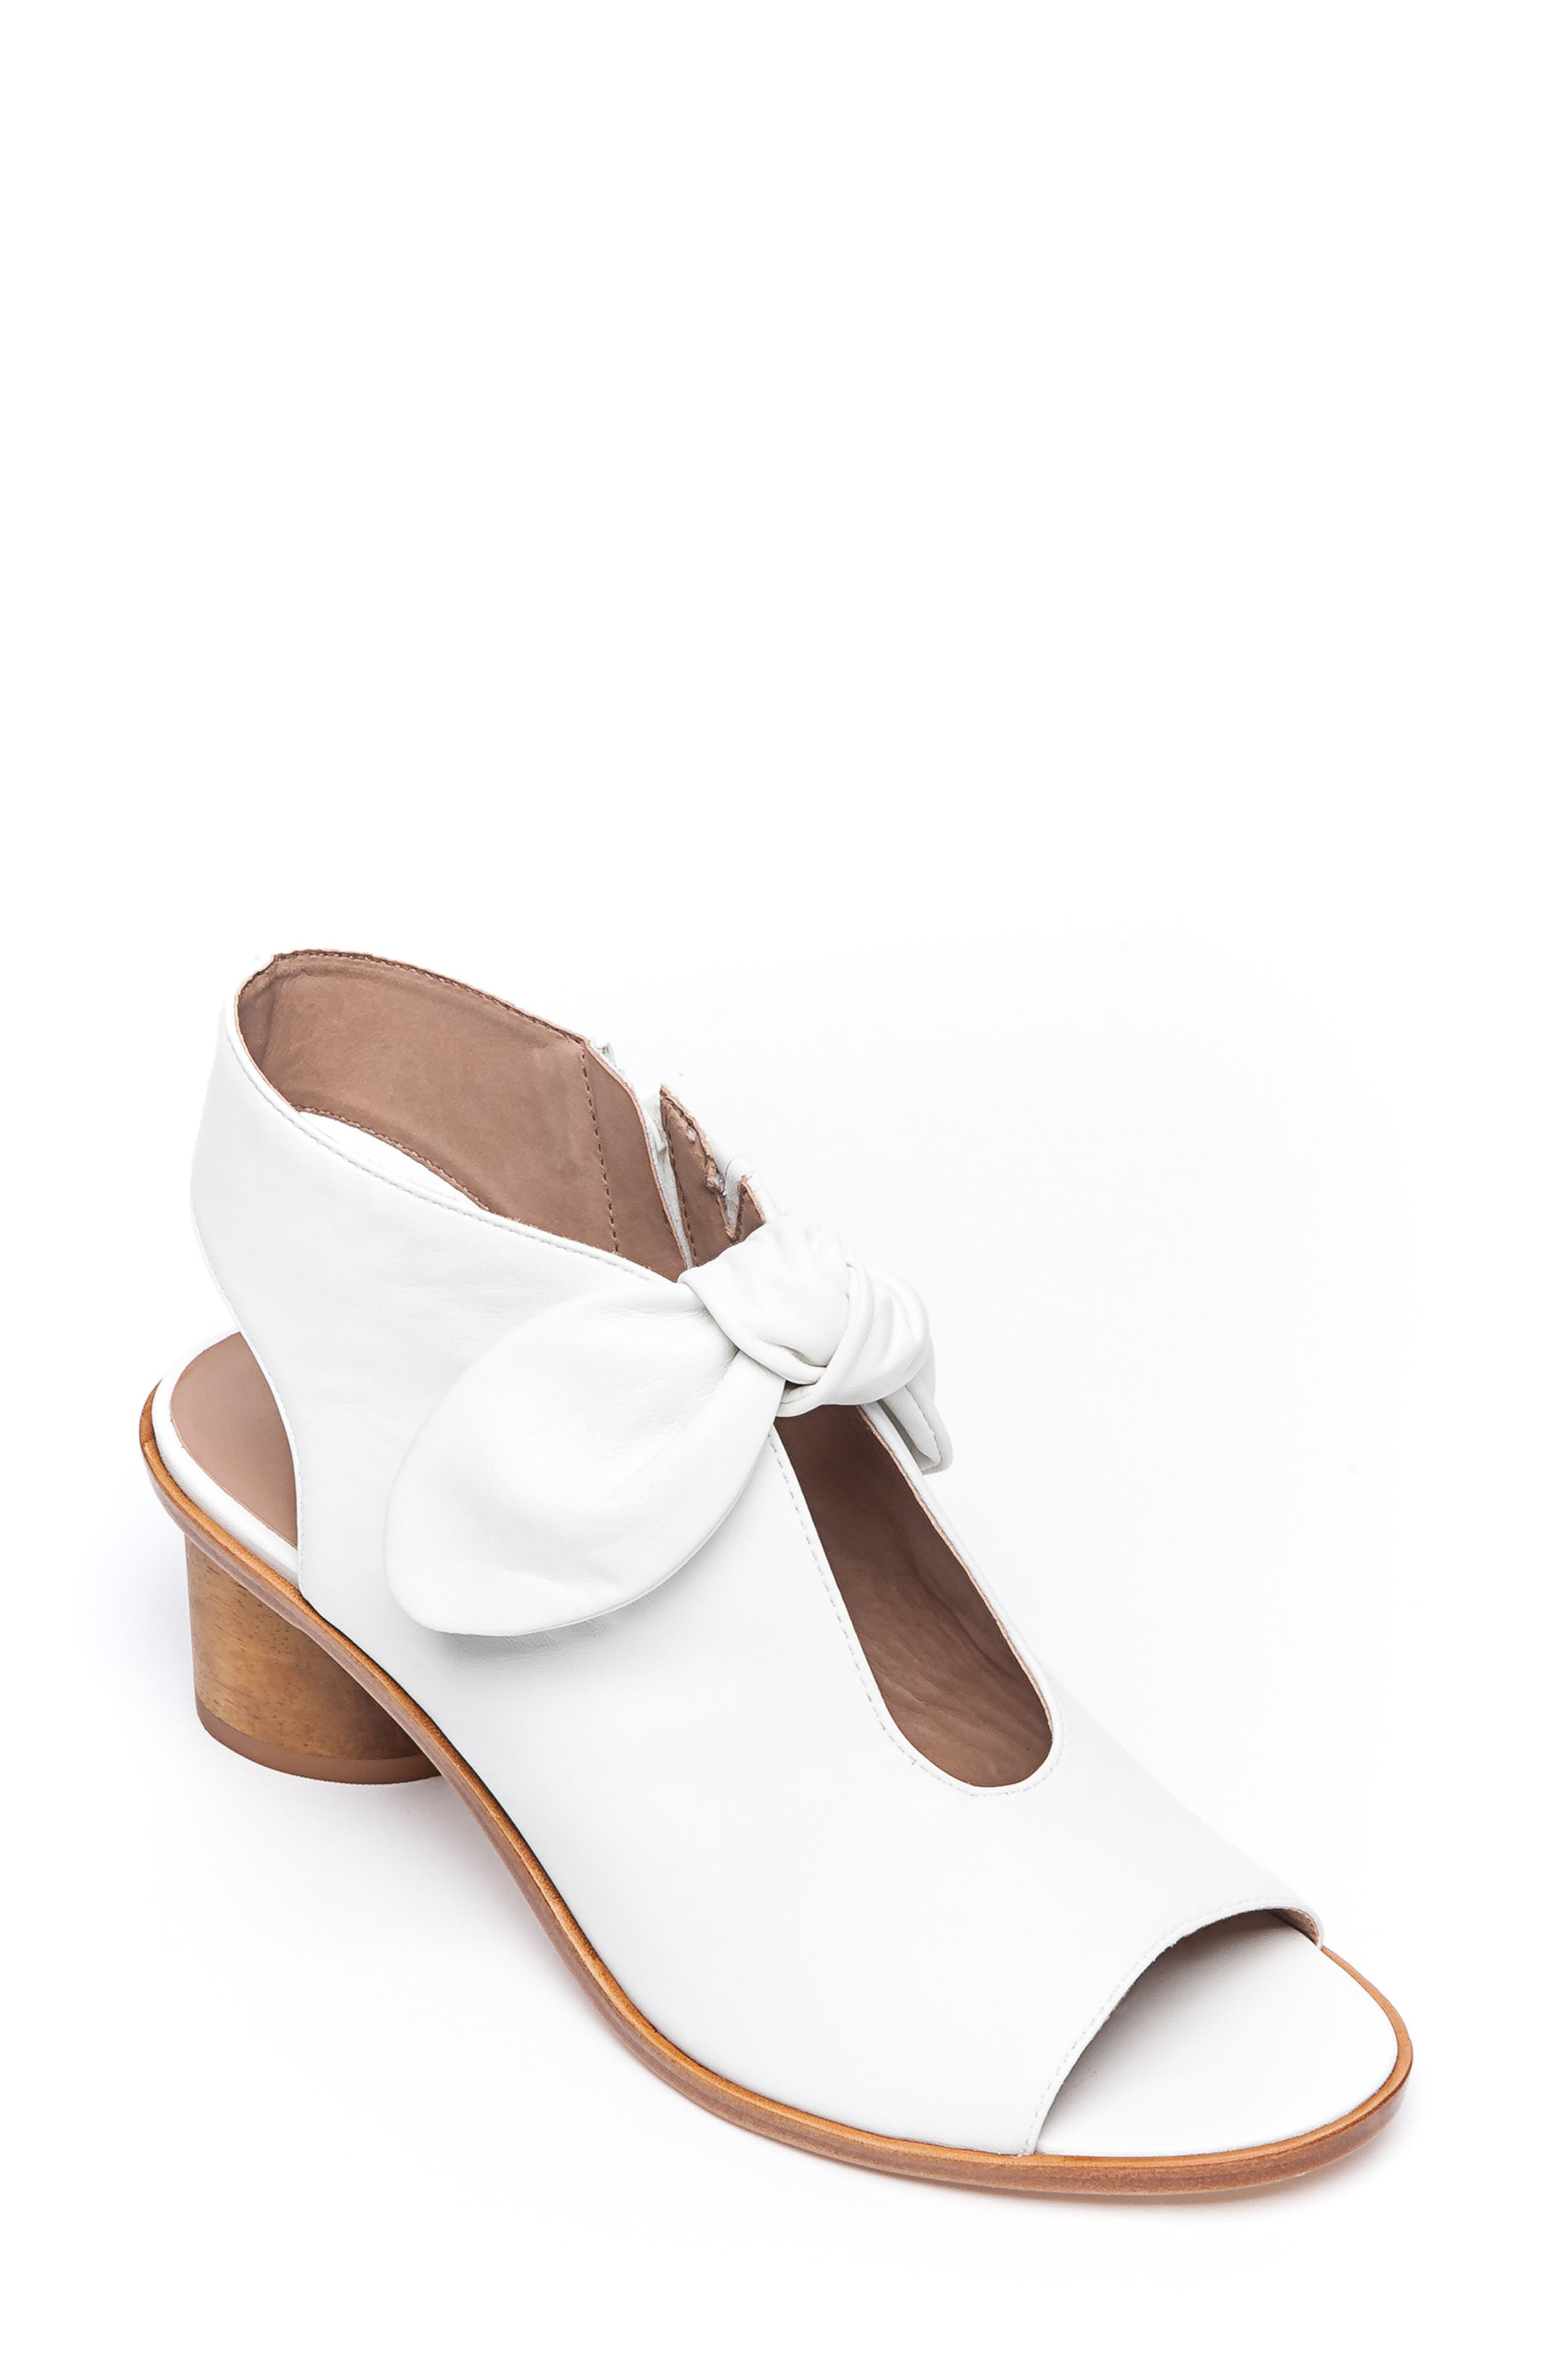 Bernardo Luna Sandal,                             Main thumbnail 1, color,                             WHITE LEATHER